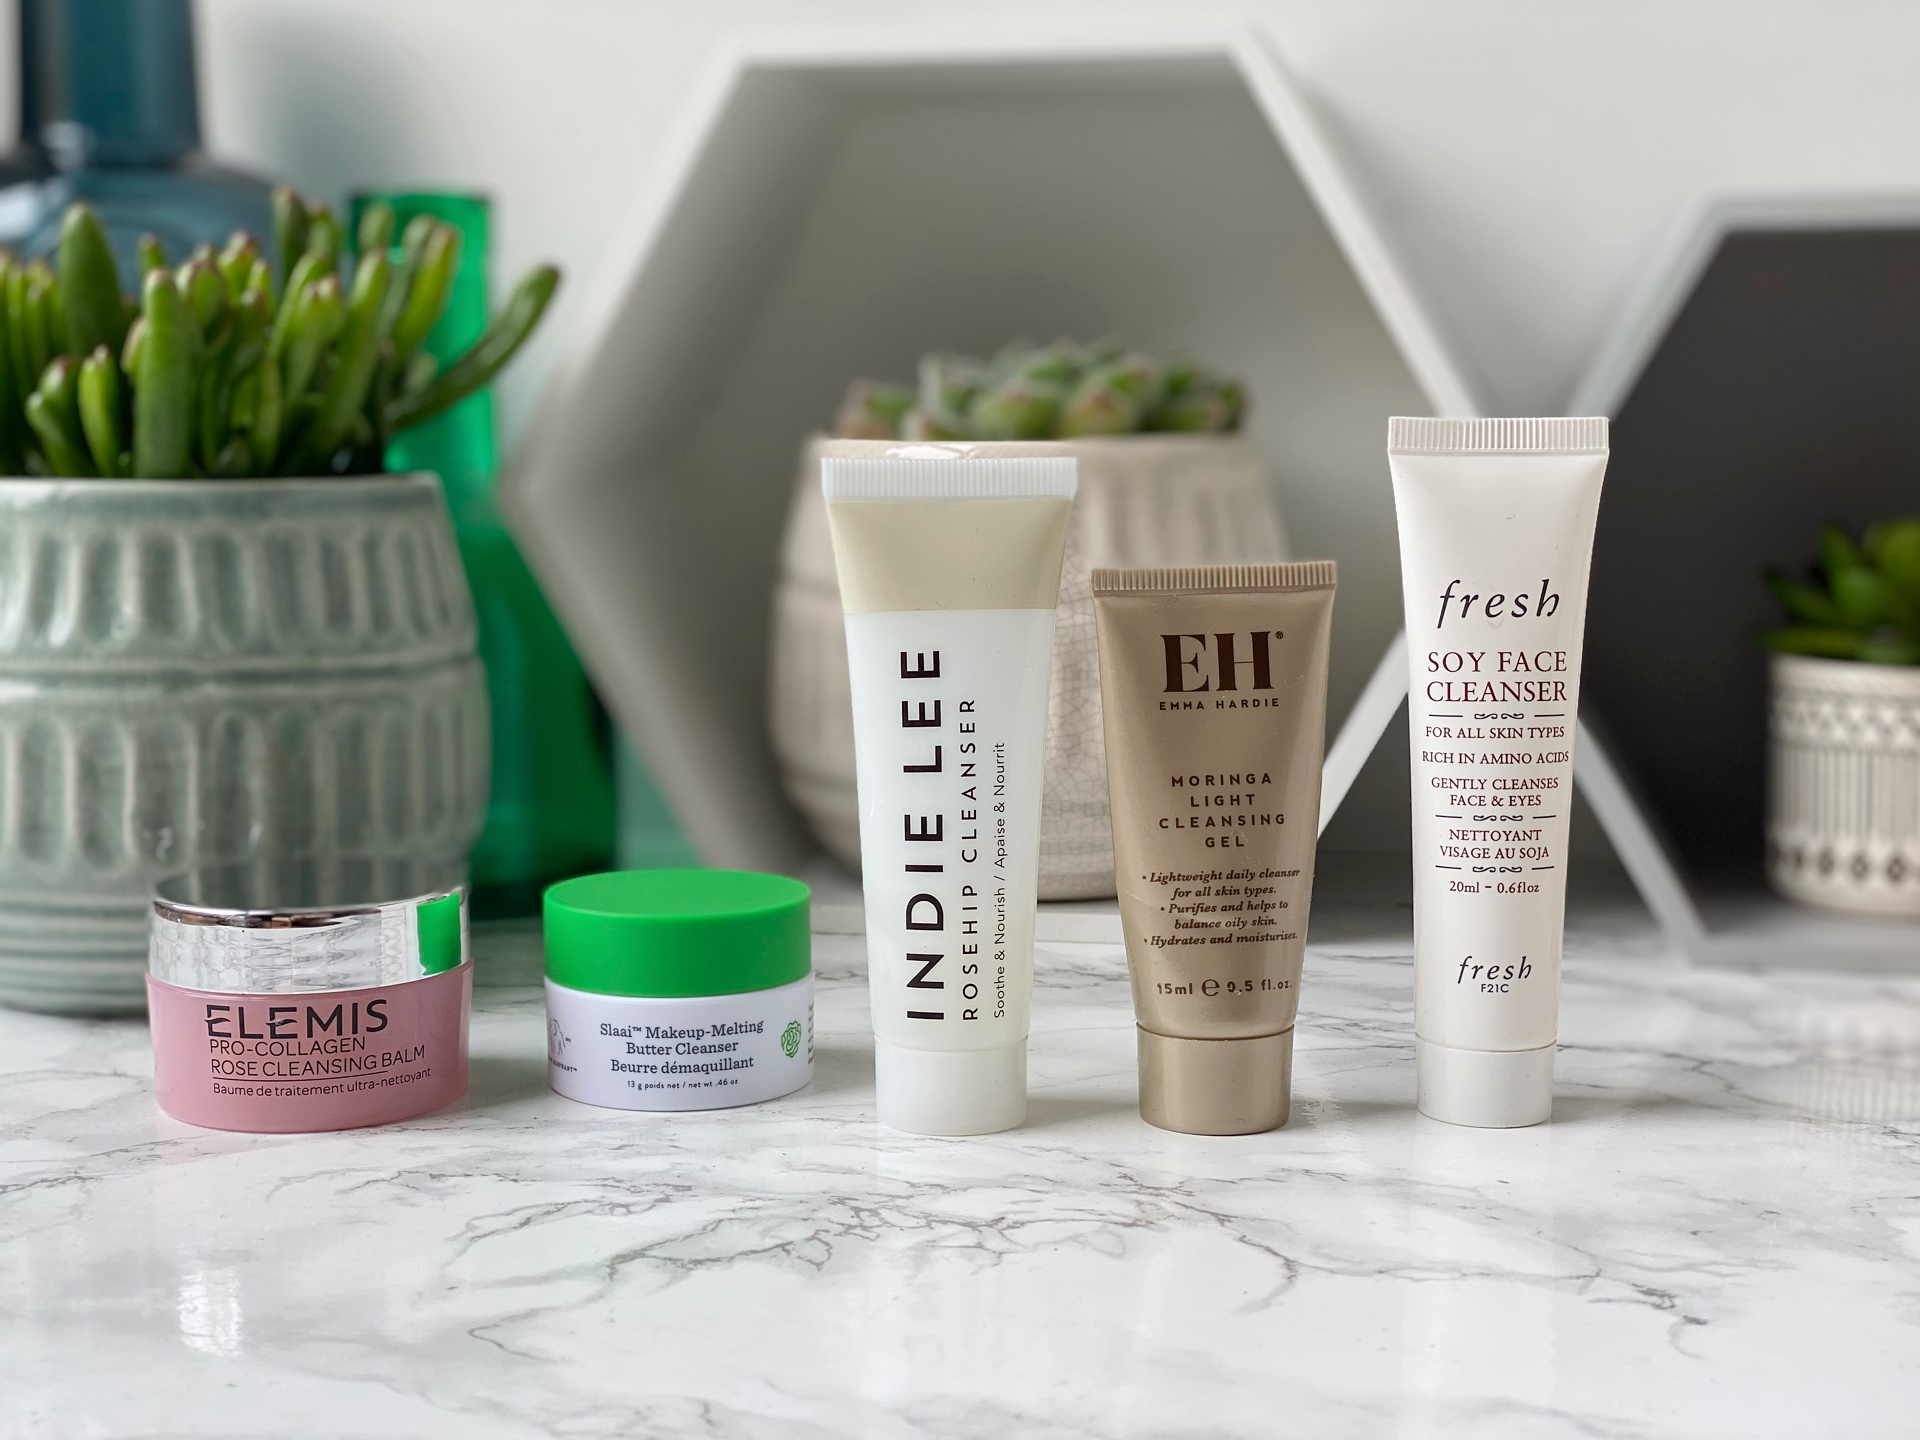 cleanser review Elemis Emma Hardie fresh indie lee